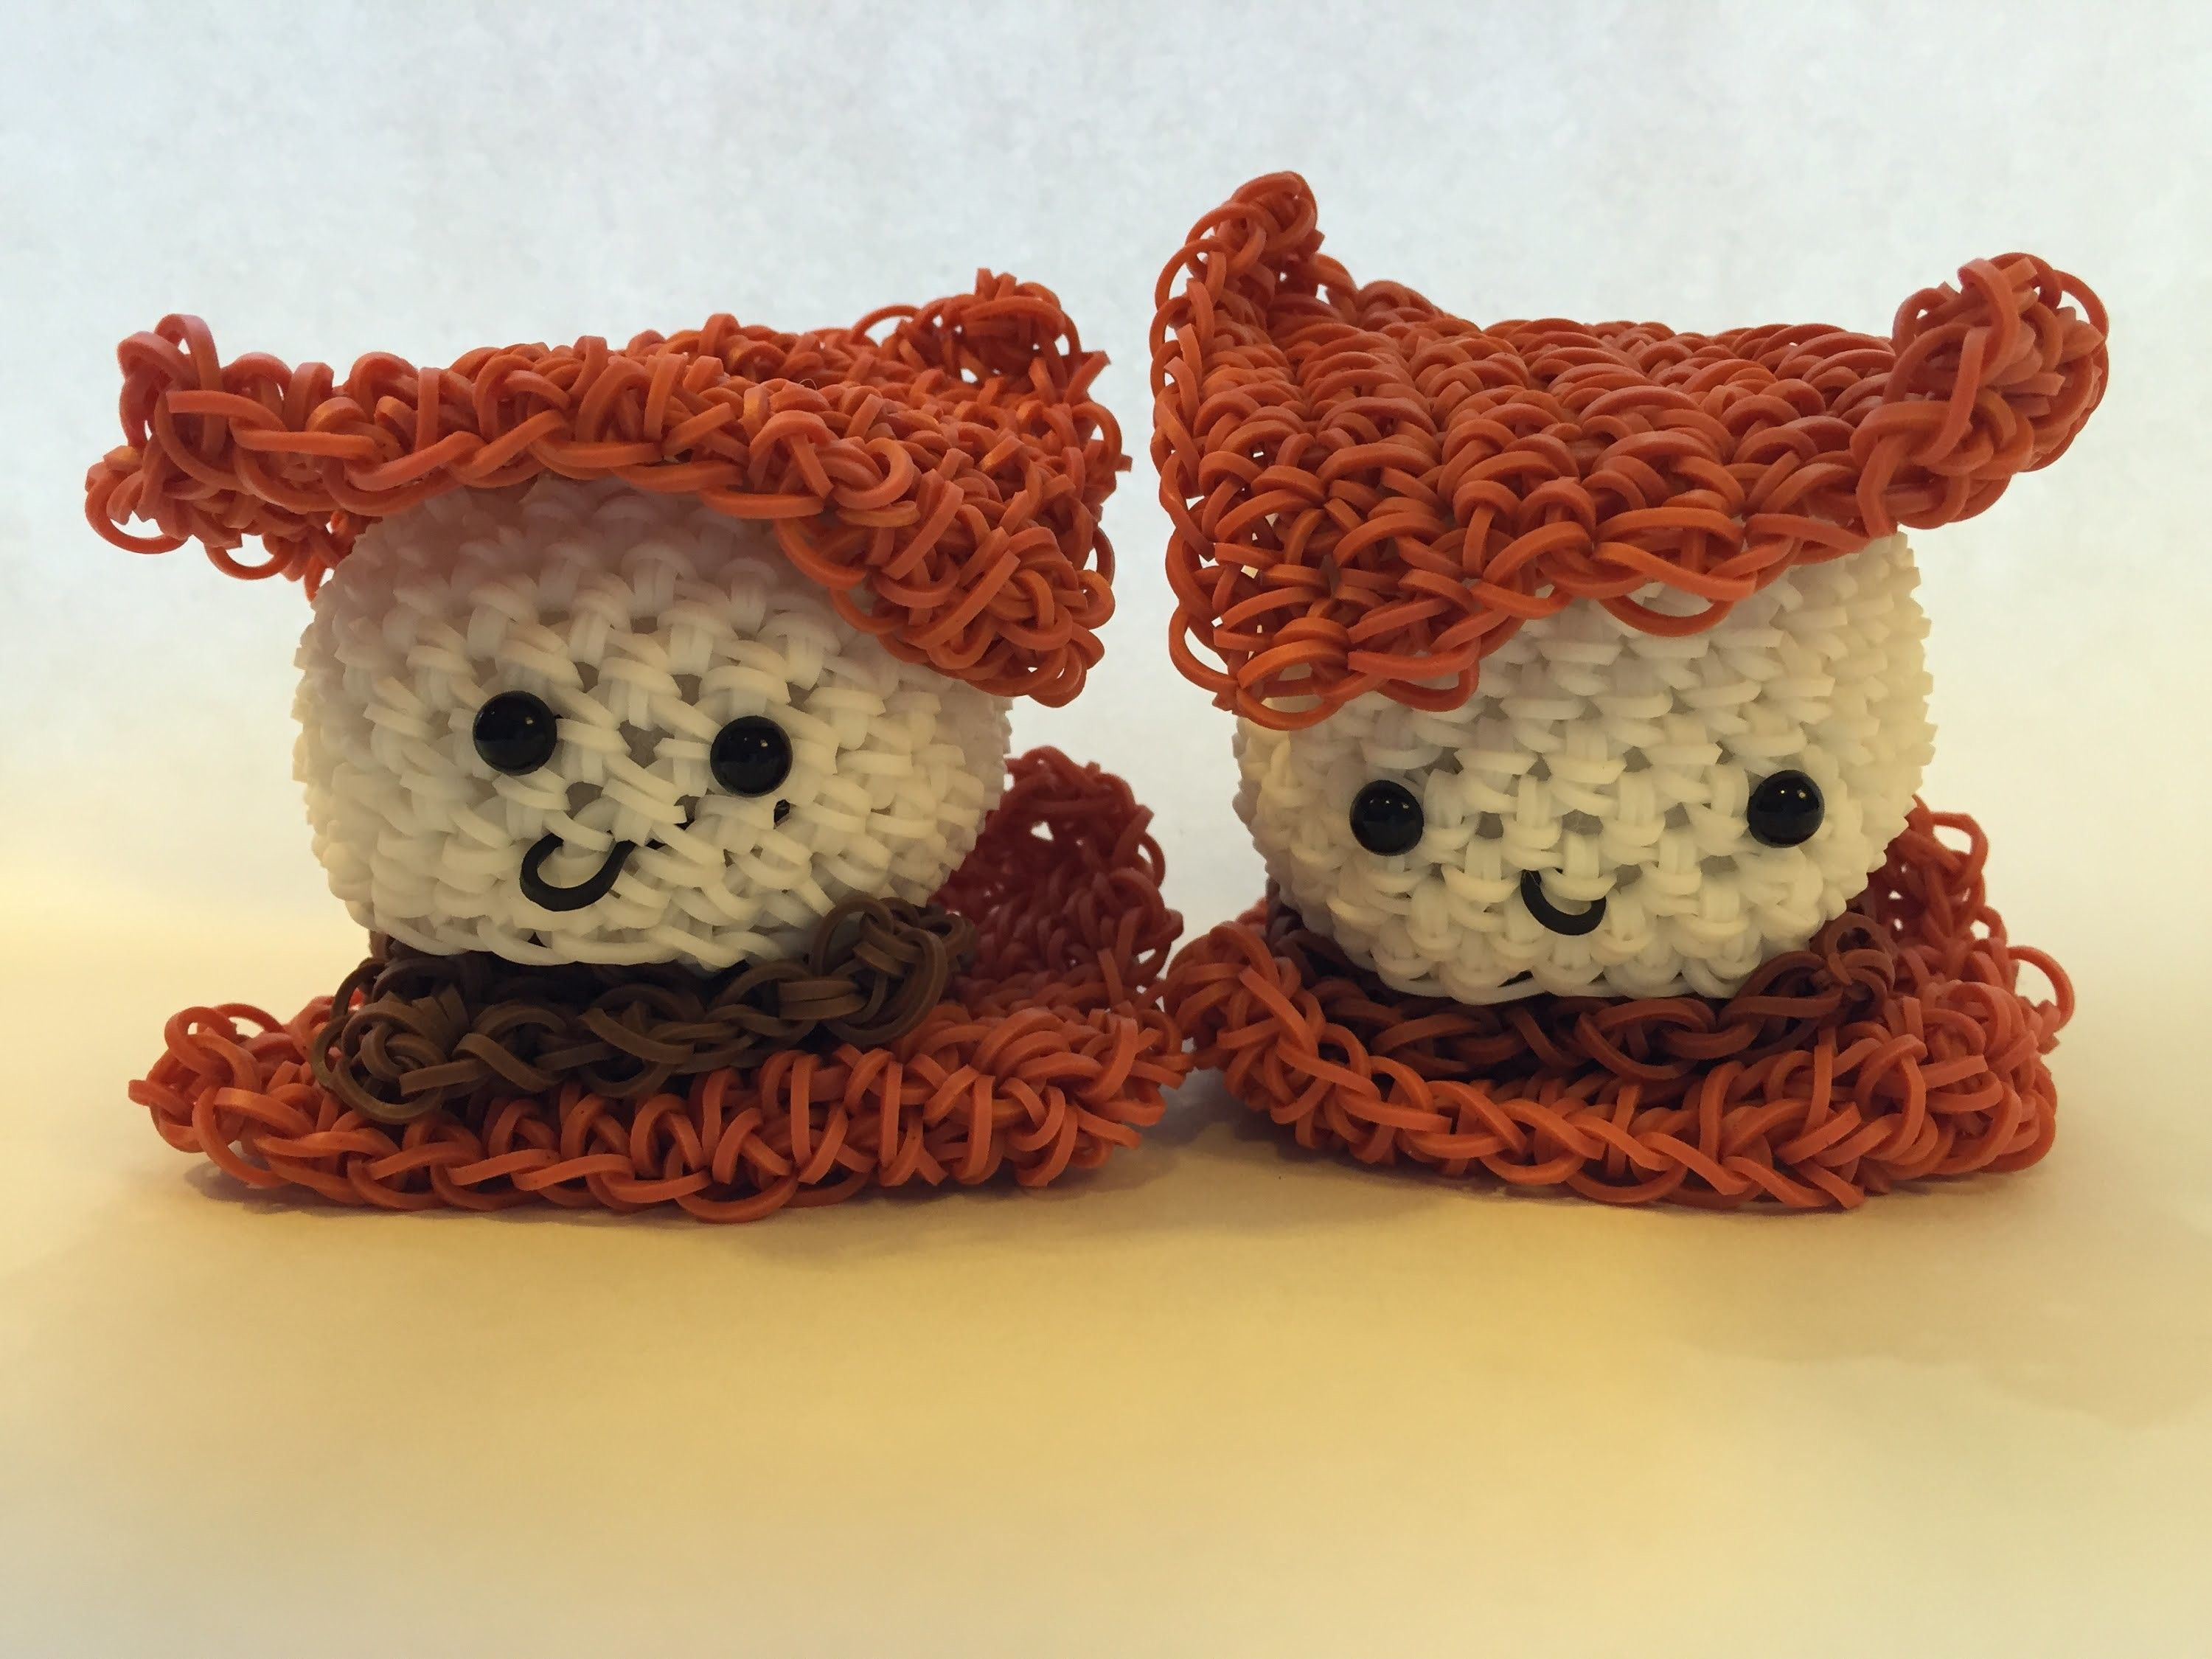 Amigurumi Loom Patterns : Smores tutorial rainbow loom kawaii loomigurumi.amigurumi hook only